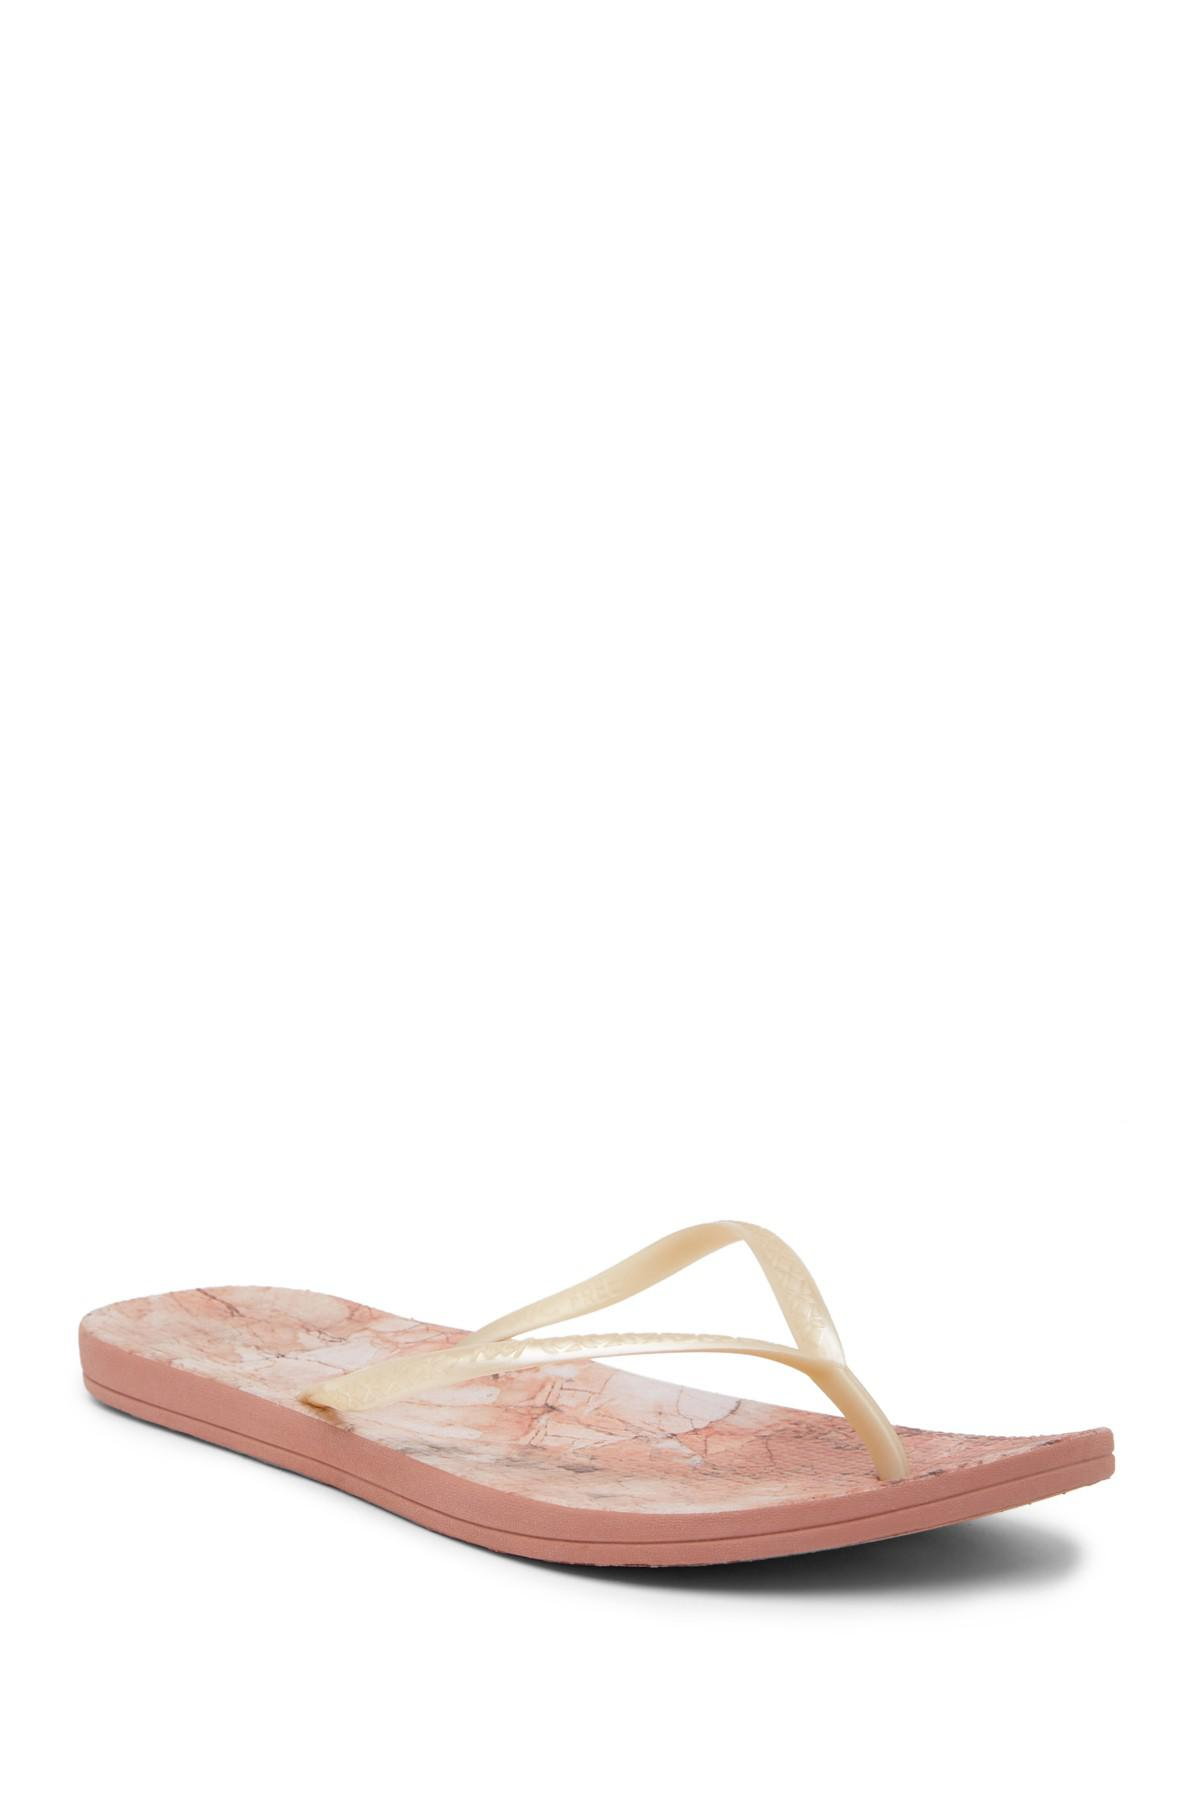 004caaf6f744 Reef. Women s Pink Escape Lux Flip Flop.  28  18 From Nordstrom Rack